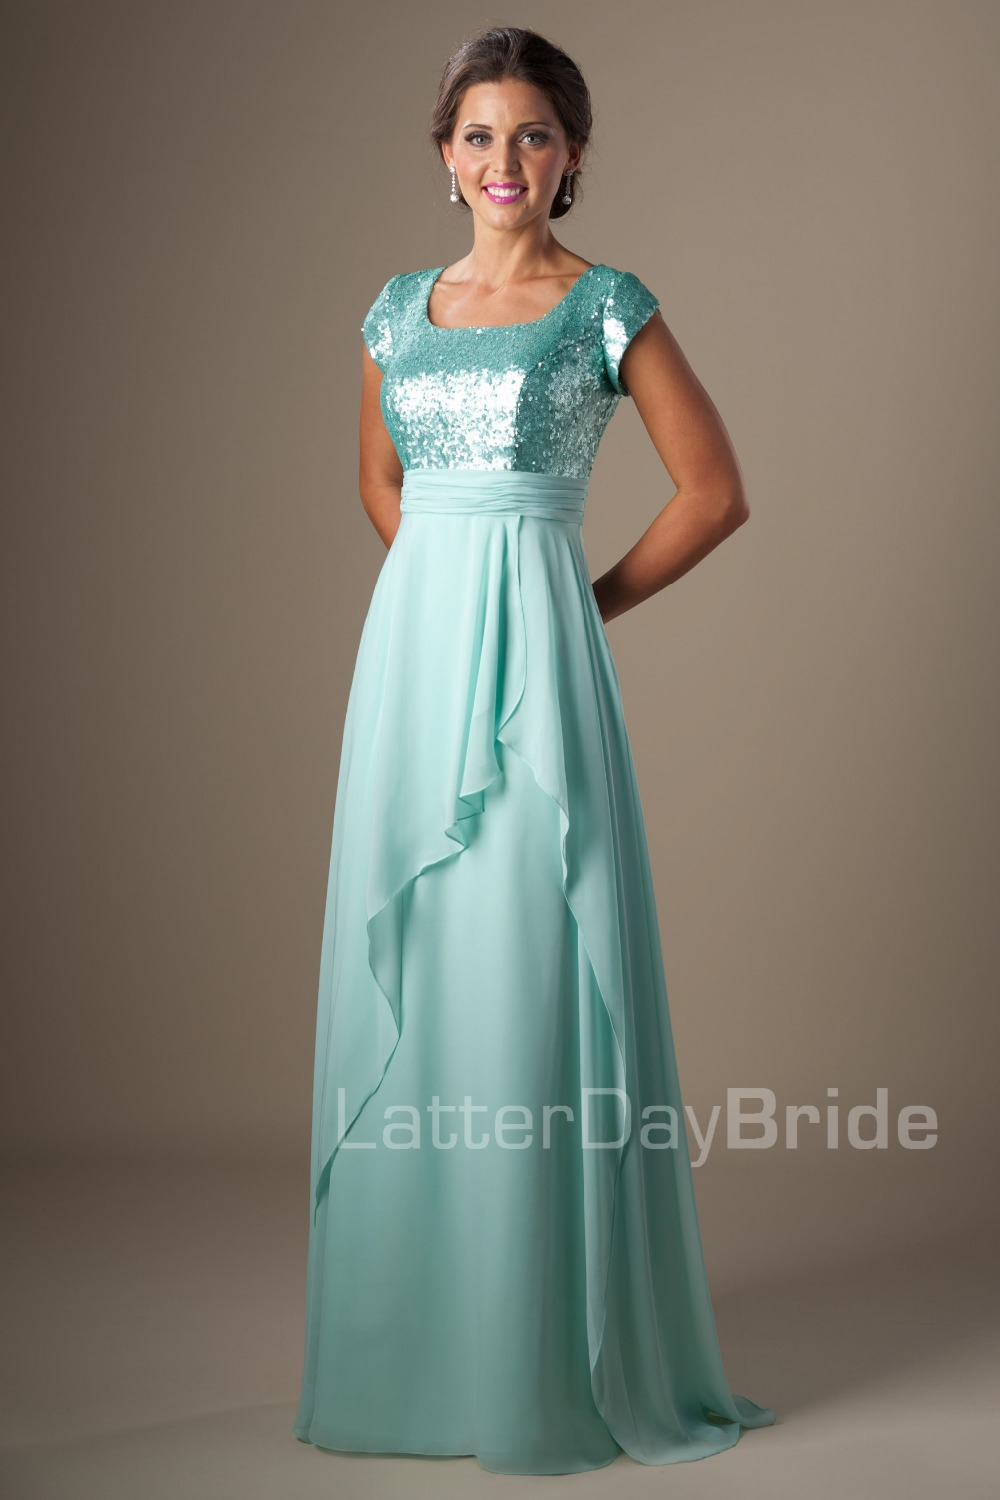 Modest Prom Dresses For Less - Homecoming Prom Dresses